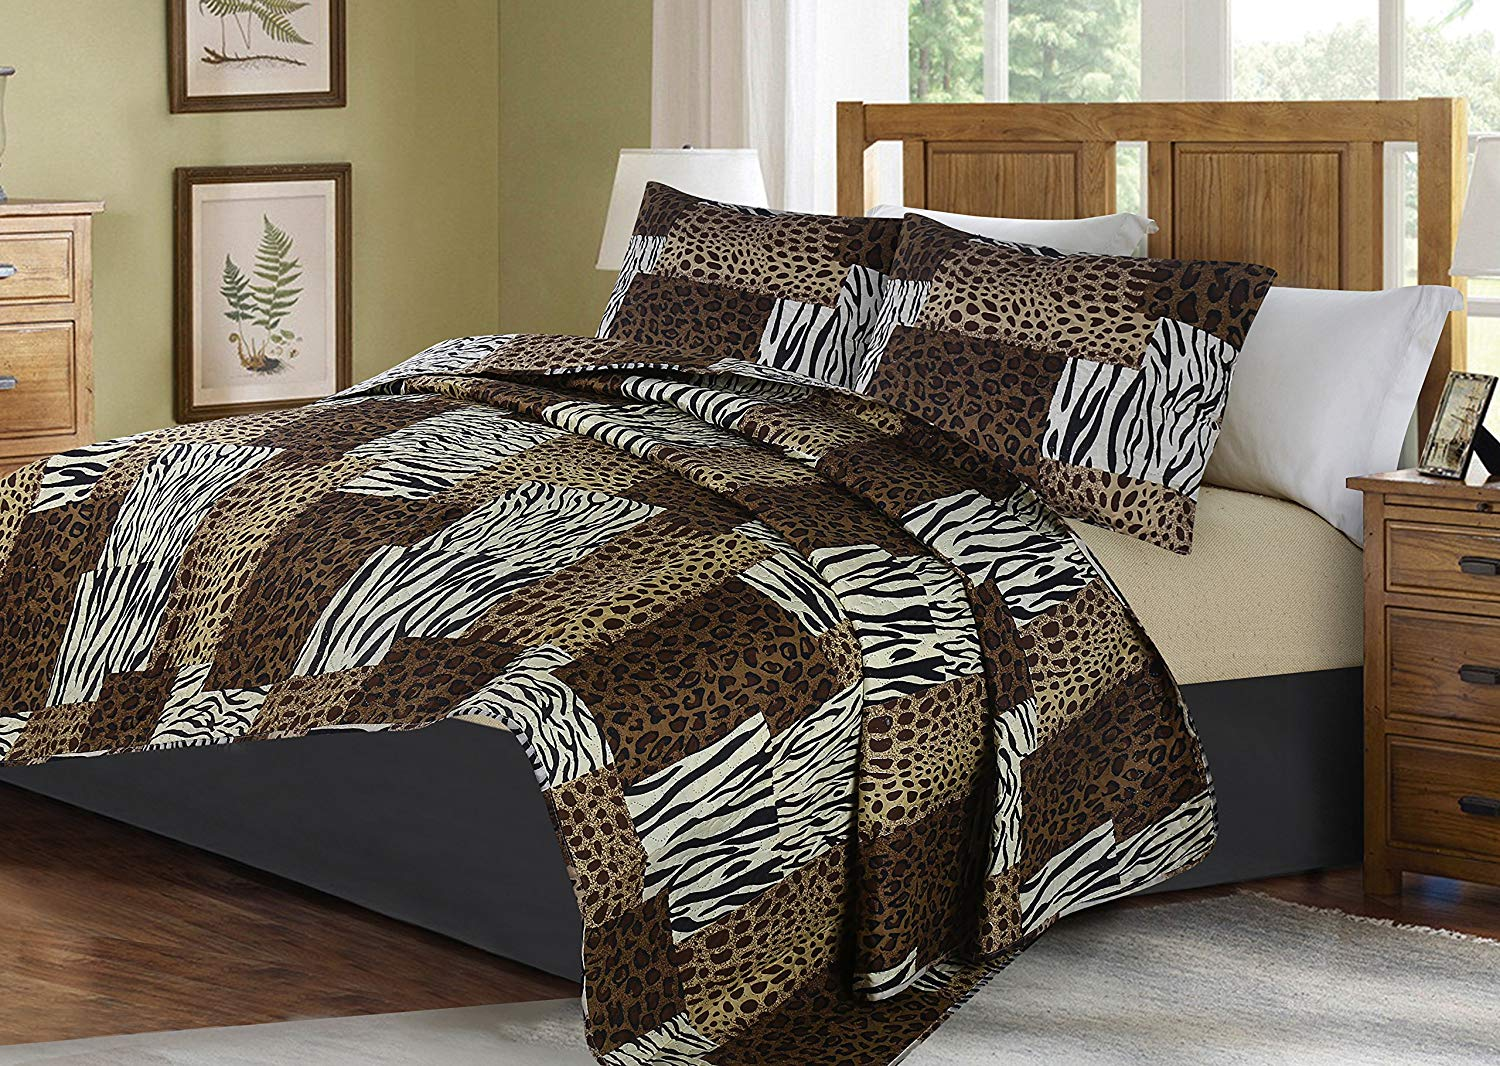 GorgeousHome 2/3PC ANIMAL Jungle Printed Quilt Bedspread Bed Dressing Bedding Cover Set with Pillow Shams in 3 Sizes AssortedStyles (#5 Leopard Tiger Zebra Mosaic, QUEEN)